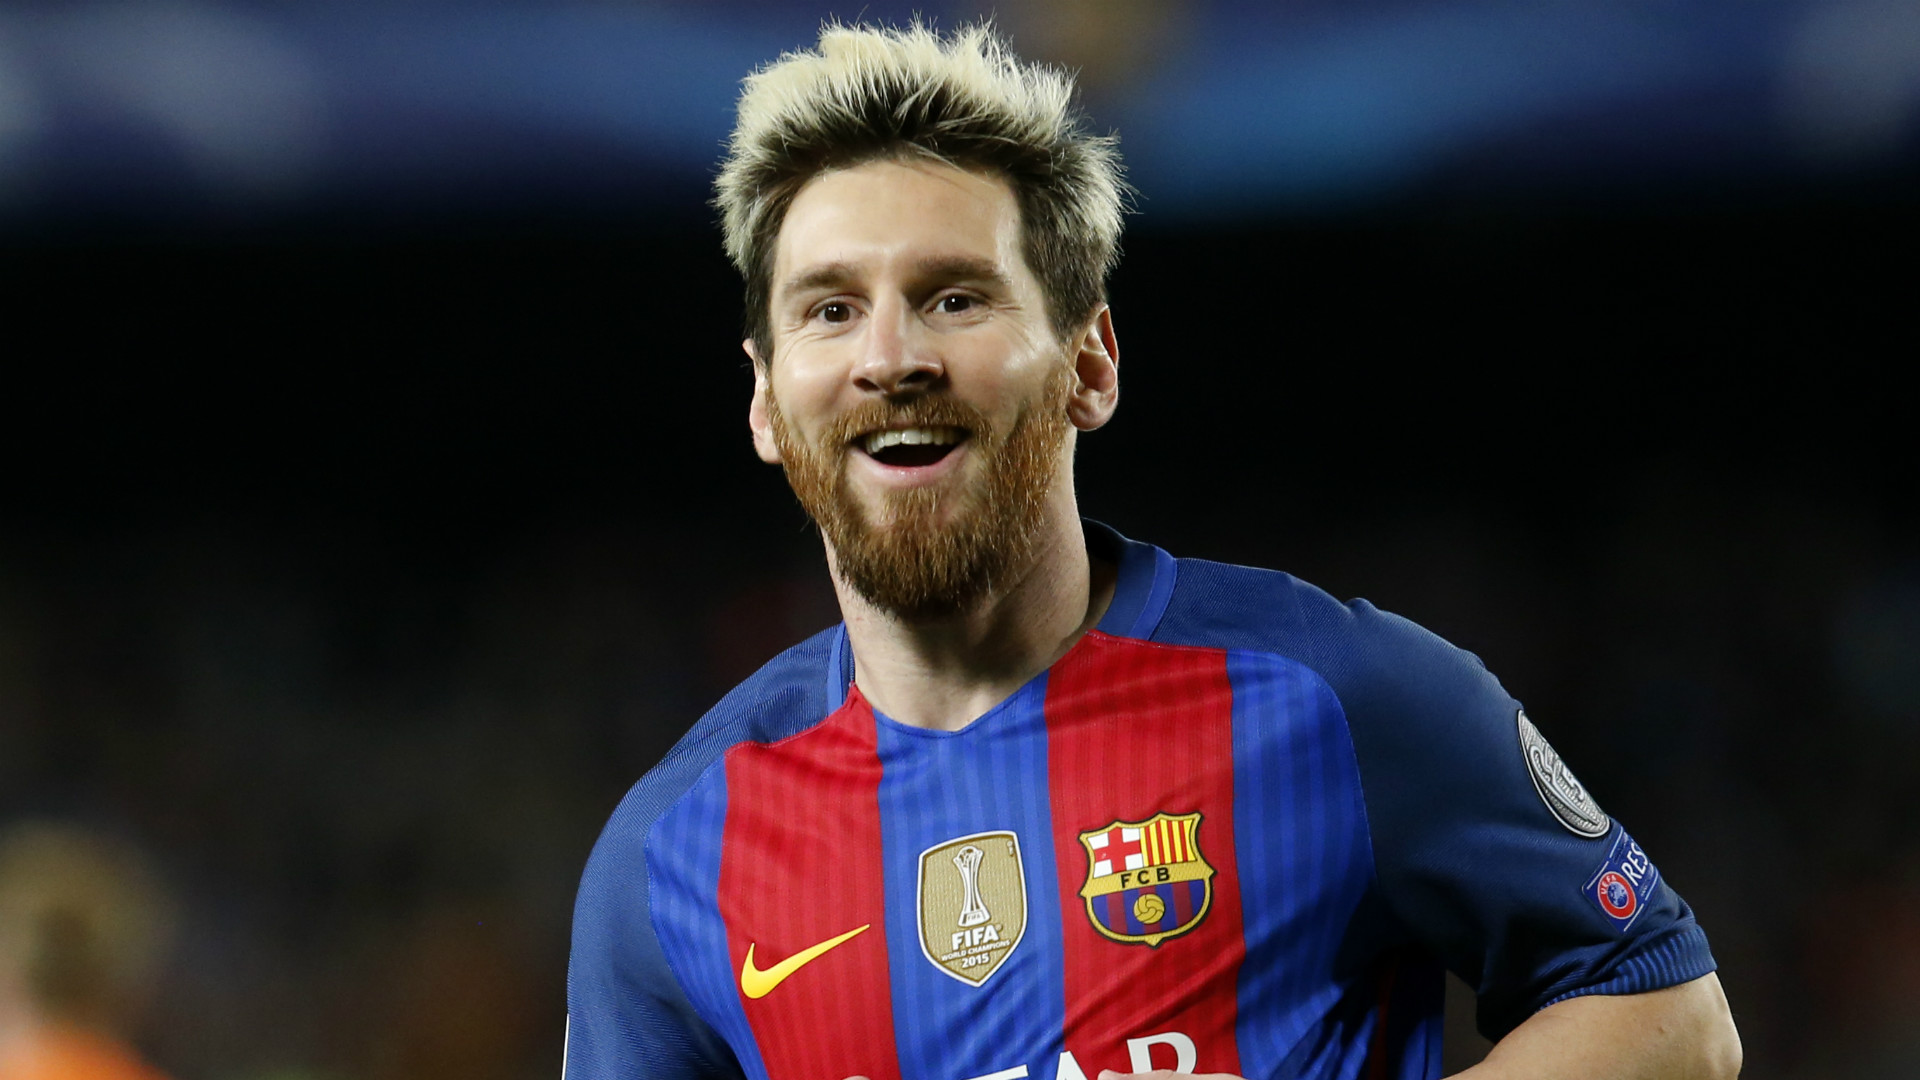 Leo Messi Fifa Player Of The Year Lionel Messi Takes Us Inside His Barcelona